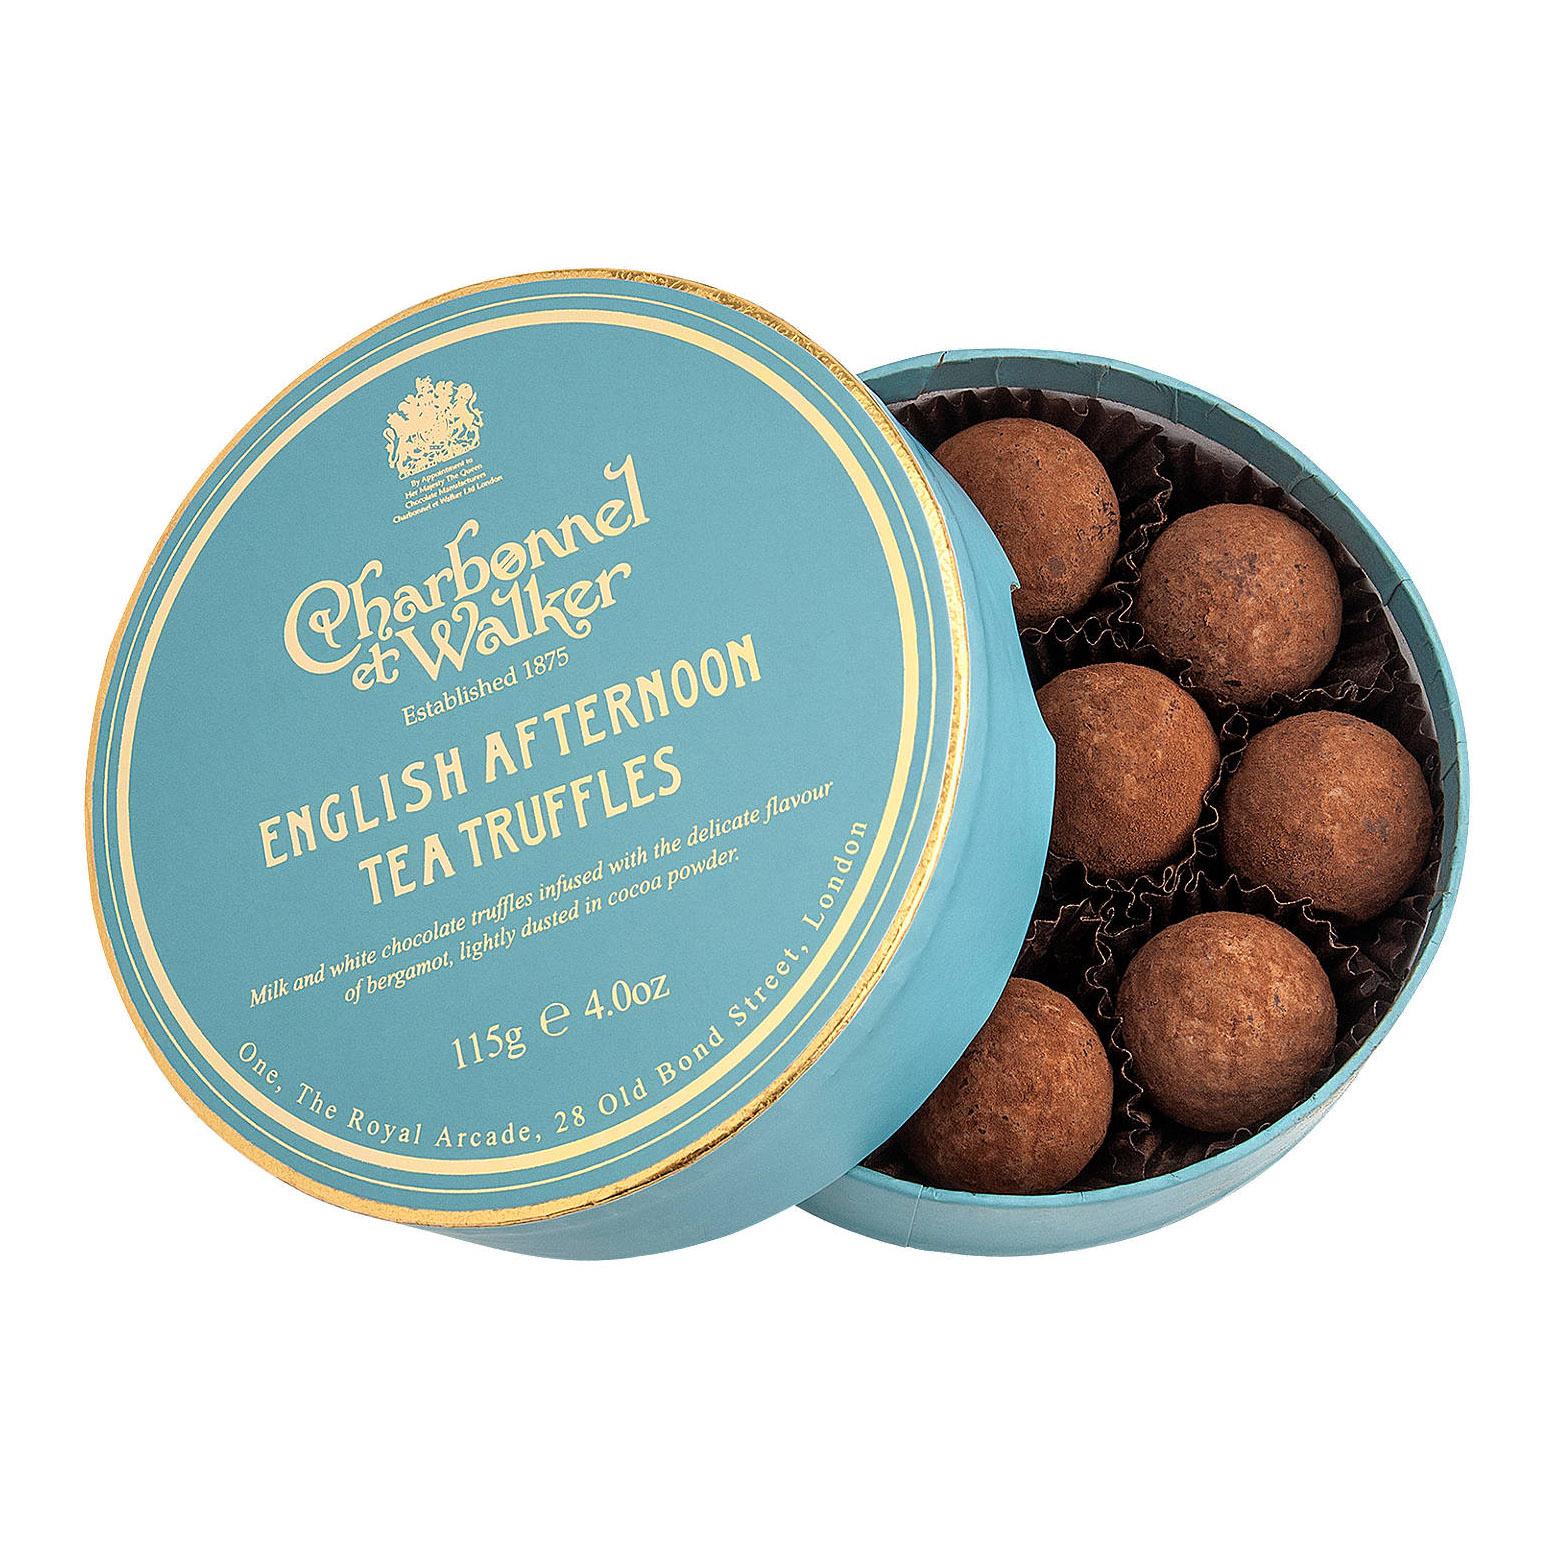 Charbonnel et Walker - English afternoon tea truffles -